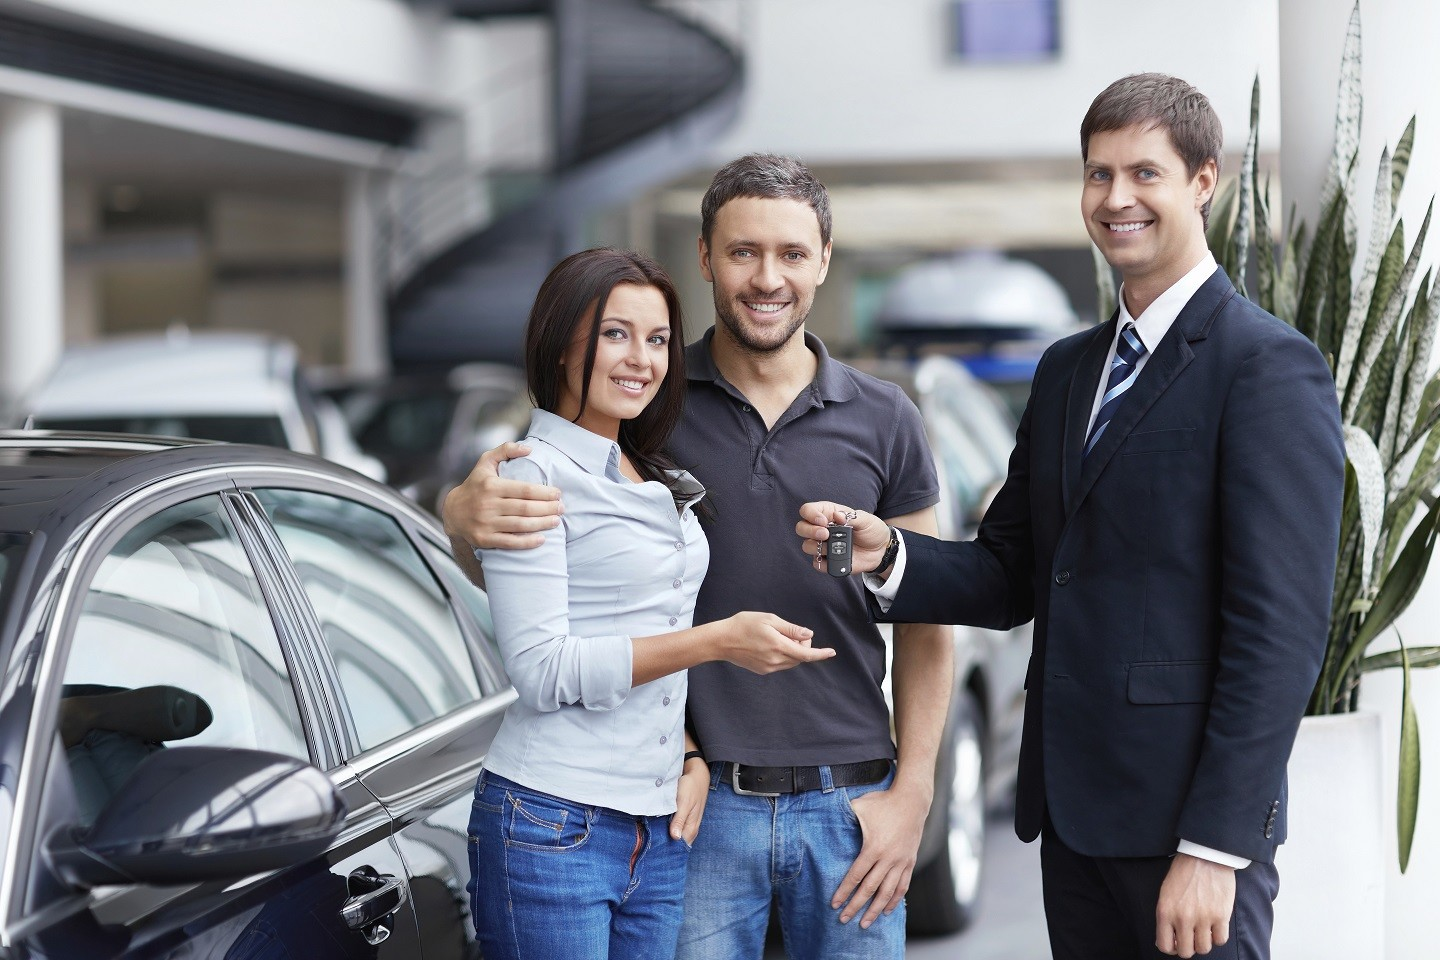 Find a Pre-Owned Vehicle You Can Trust